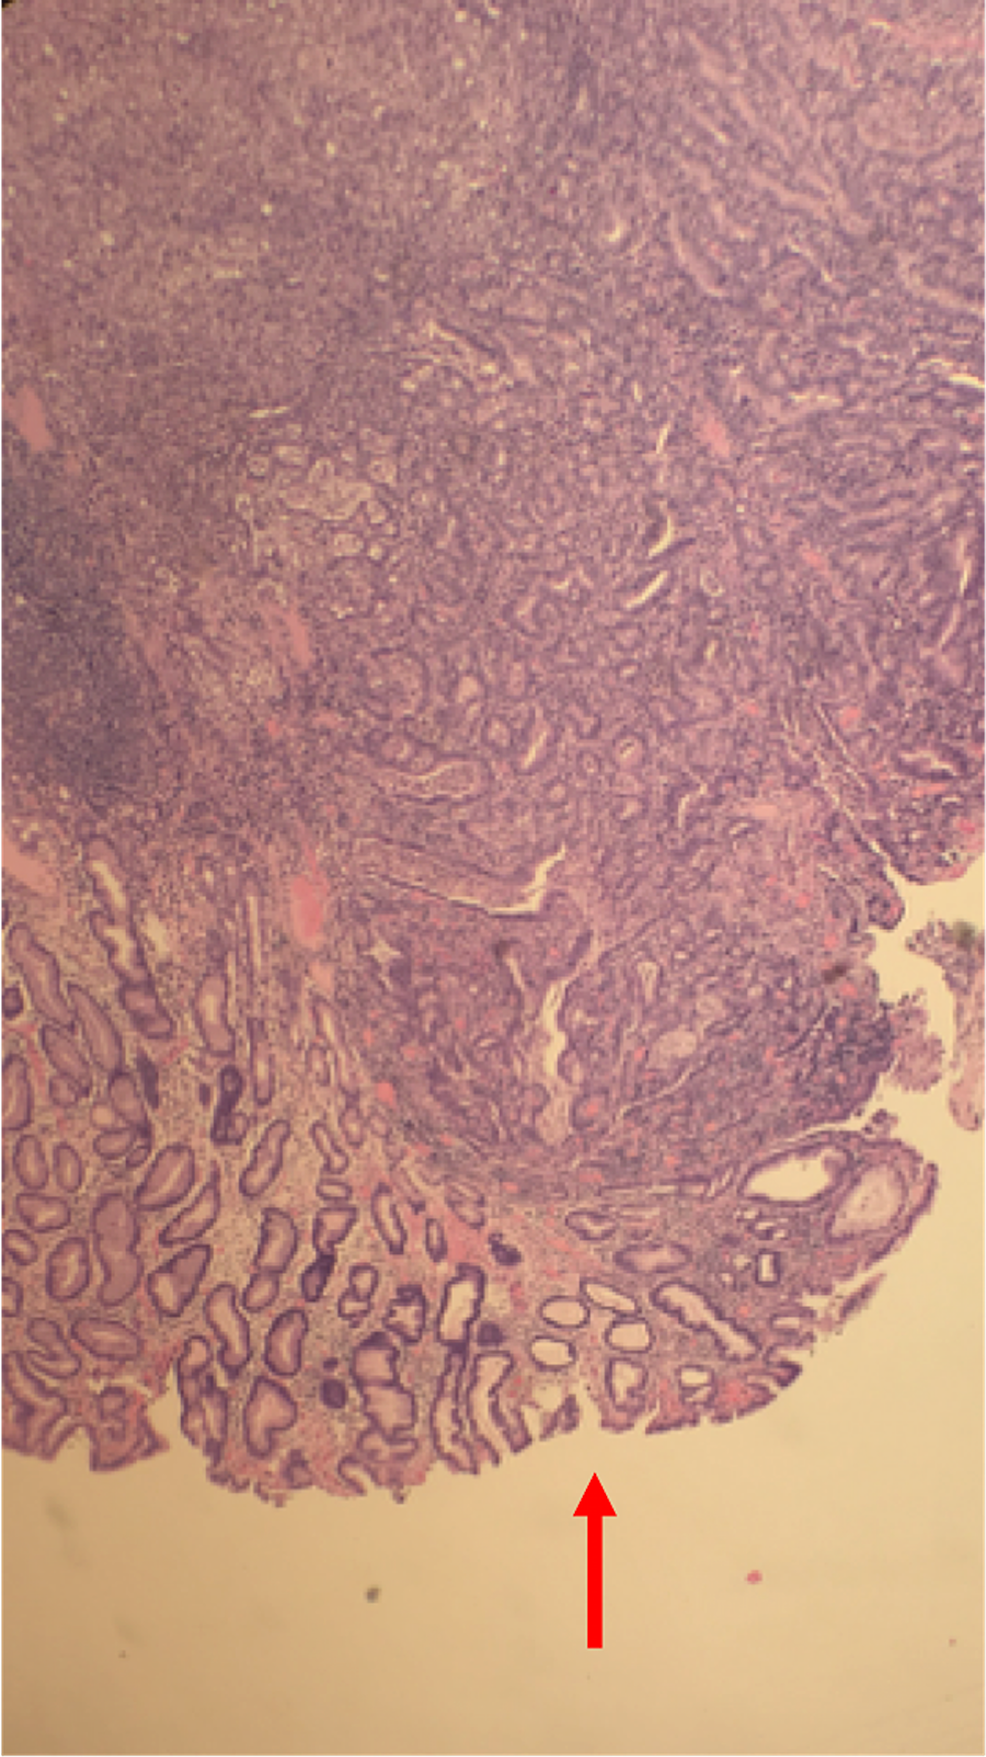 Histopathology-slide-of-colon-showing-cancer-cells-invading-muscularis-propria-and-extending-into-the-serosa.